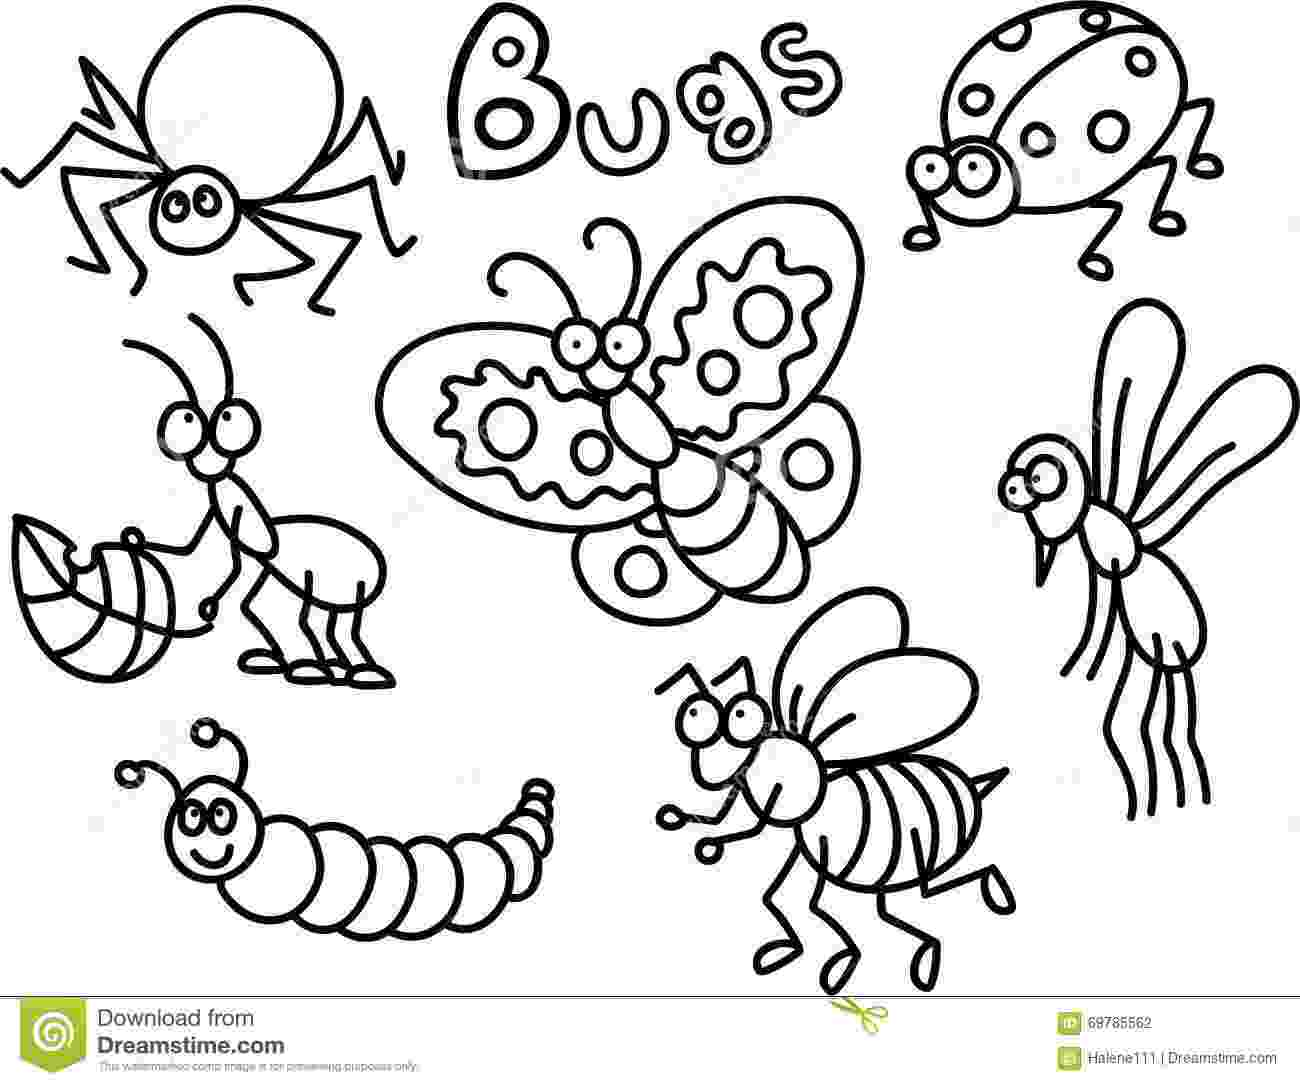 pictures of insects to color insect coloring pages best coloring pages for kids color pictures insects of to